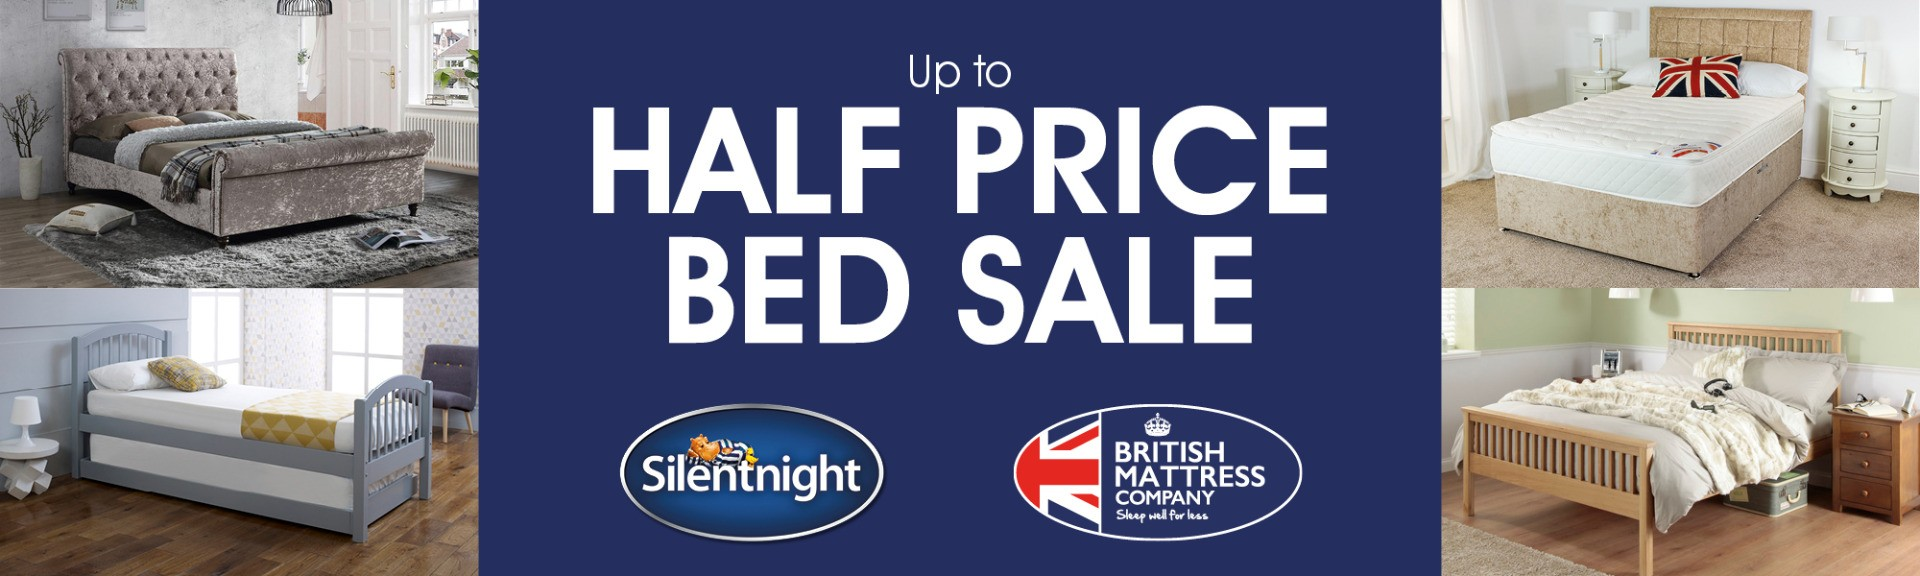 half price bed sale